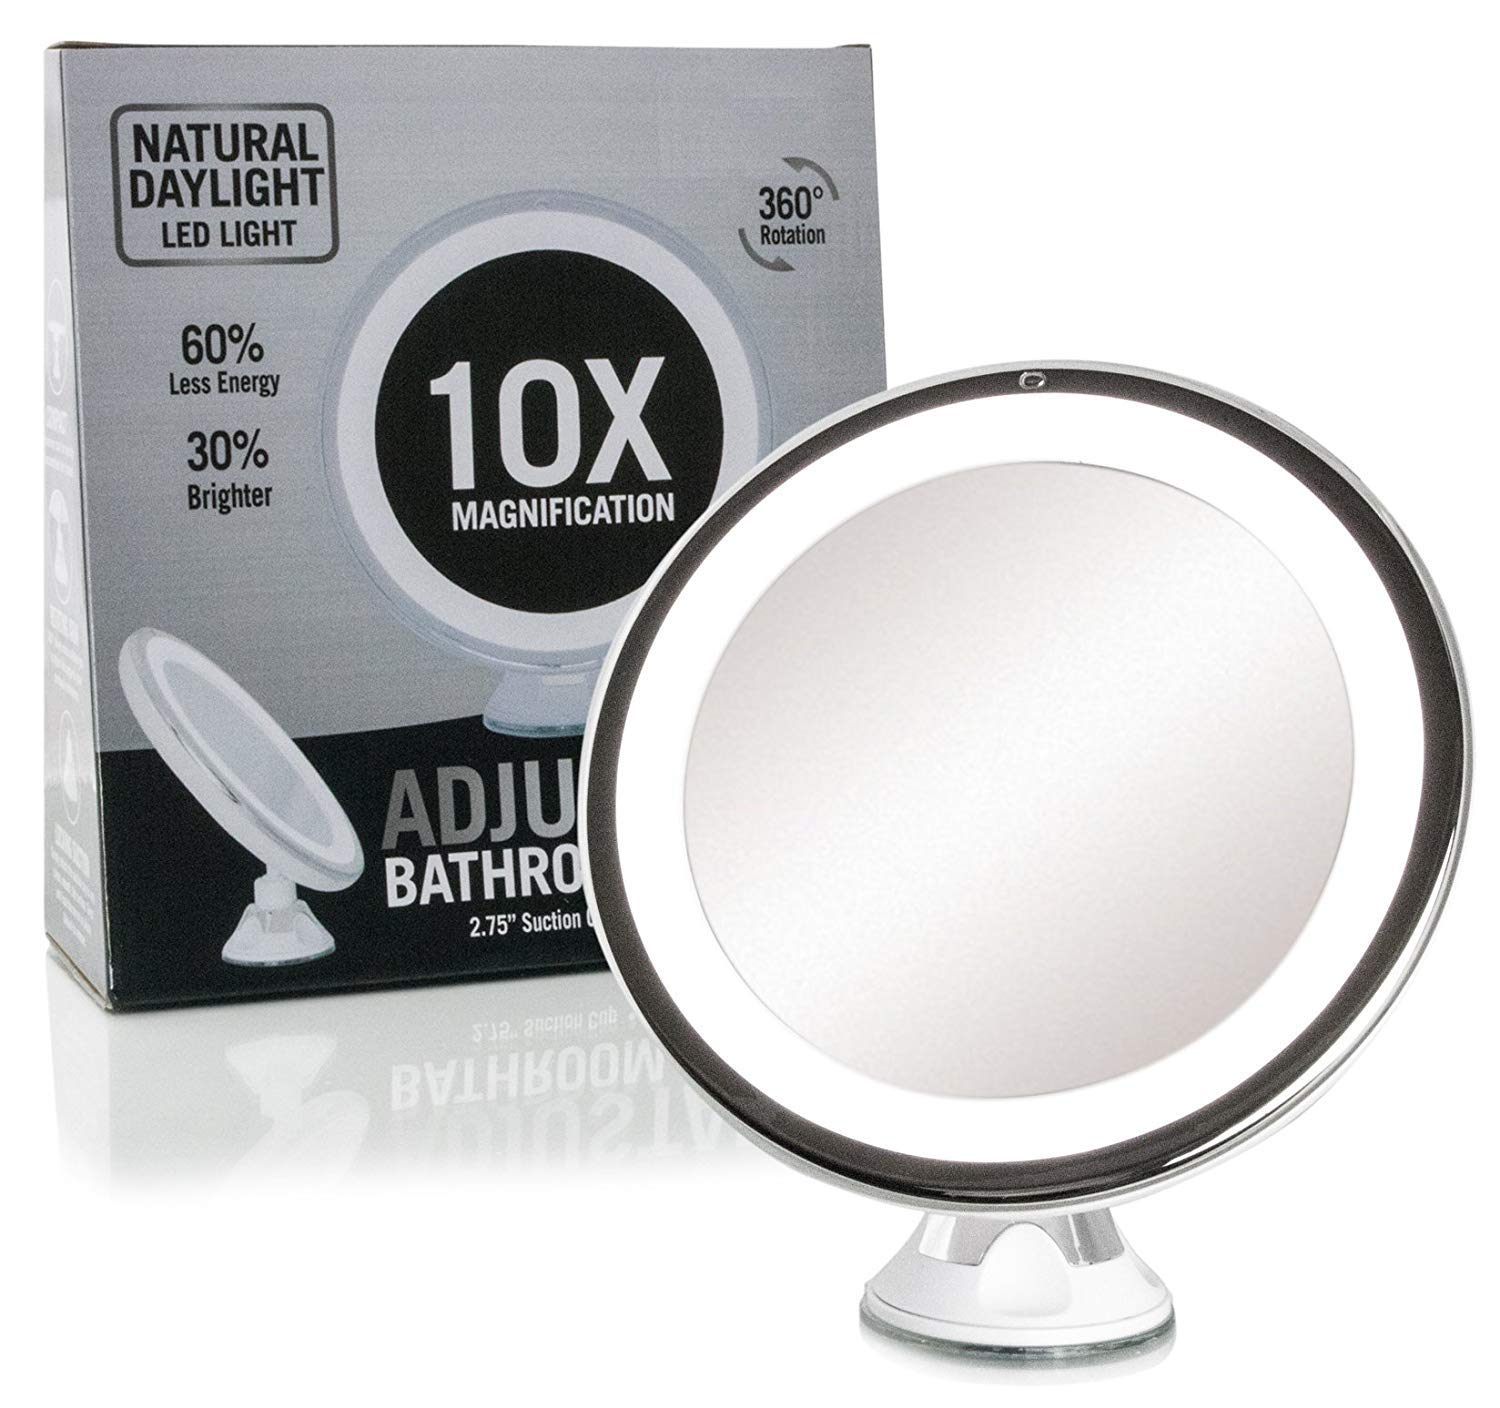 Fancii Daylight LED 10X Magnifying Makeup Mirror - 8.0 Large Lighted Travel Vanity Mirror - Dimmable Light, Cordless, Battery Operated, Locking Suction, 360 Rotation, Portable & Illuminated TYT FC-LMMM10X